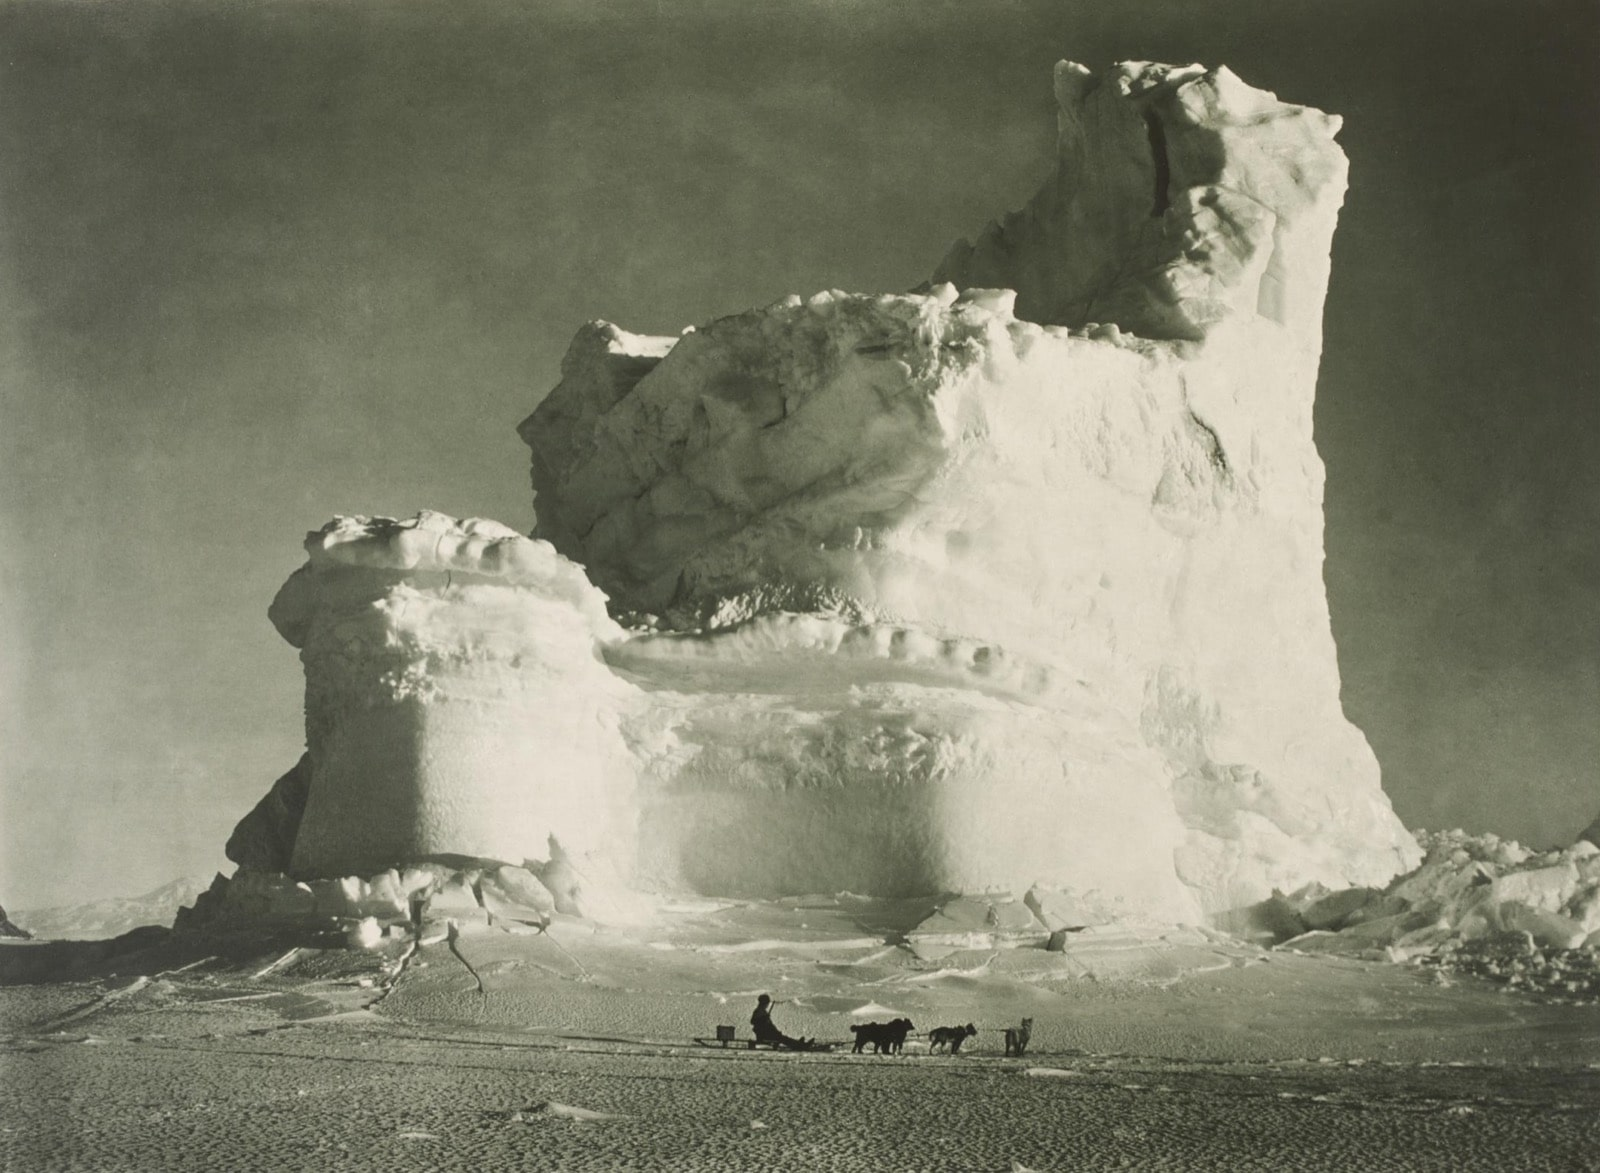 """A party member of the British Antarctic Expedition journeys by dogsled in front of a weathered iceberg, nicknamed """"The Castle Berg."""" Photo by Herbert G. Ponting/ © Victoria and Albert Museum, London"""